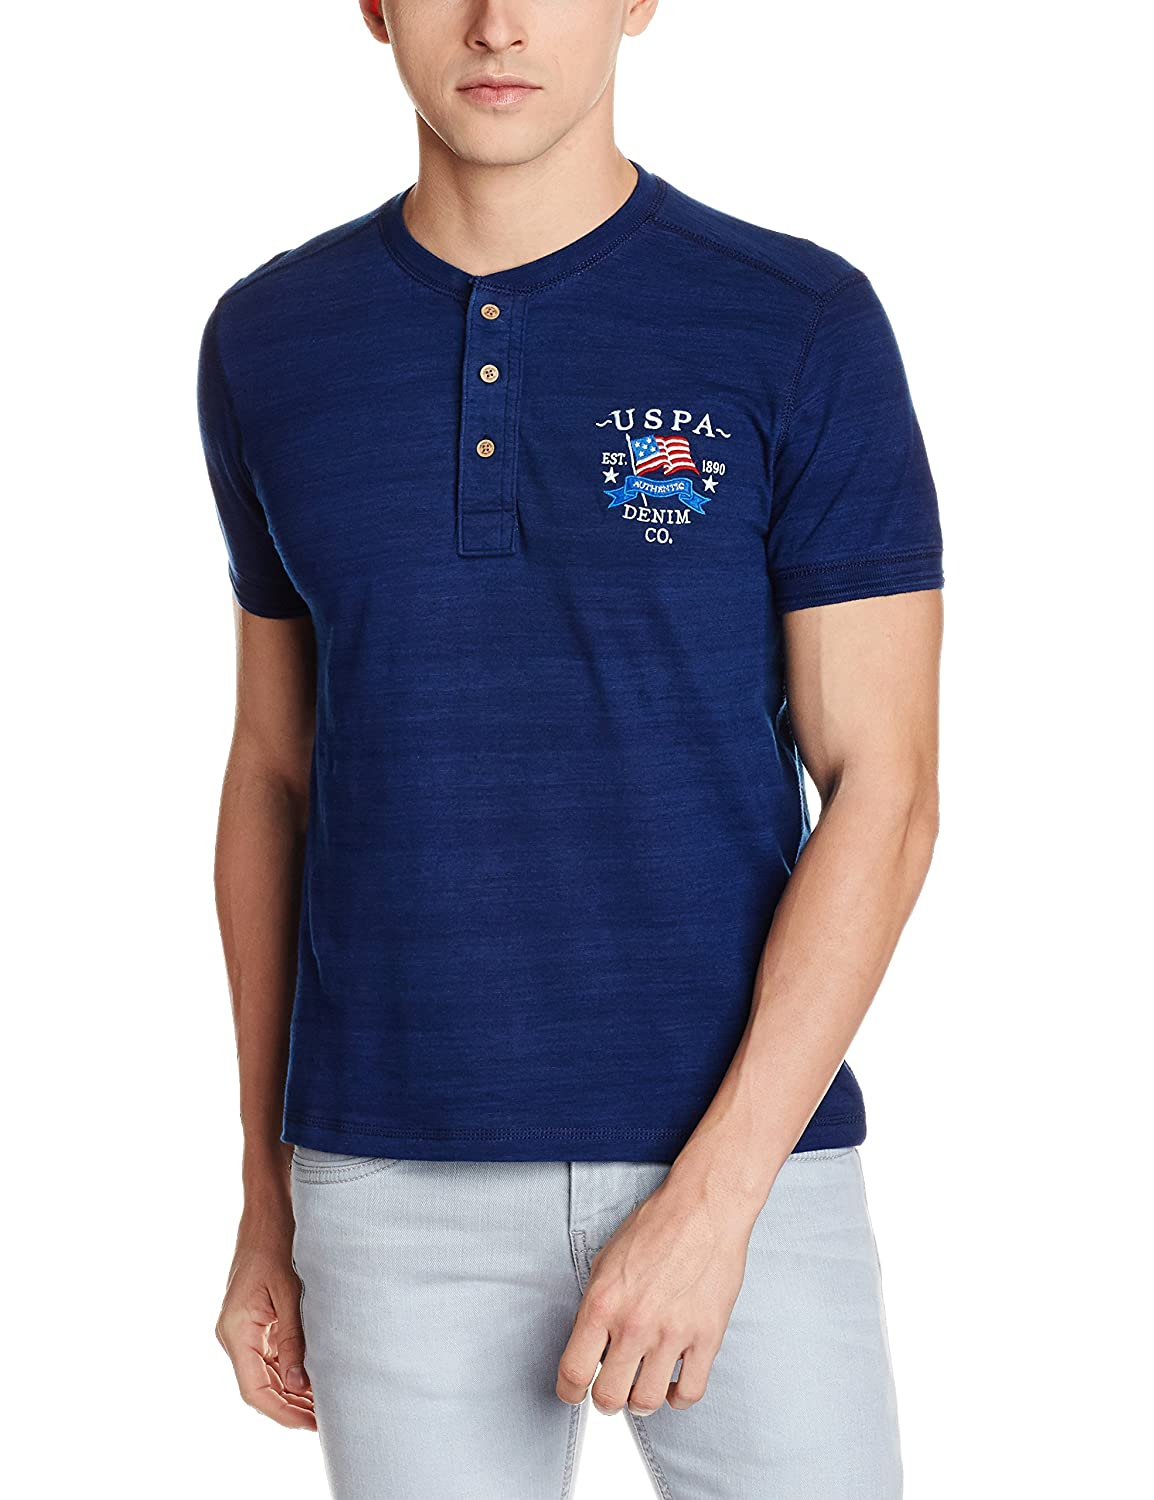 Design your own t shirt india cash on delivery - Us Polo Men S T Shirt